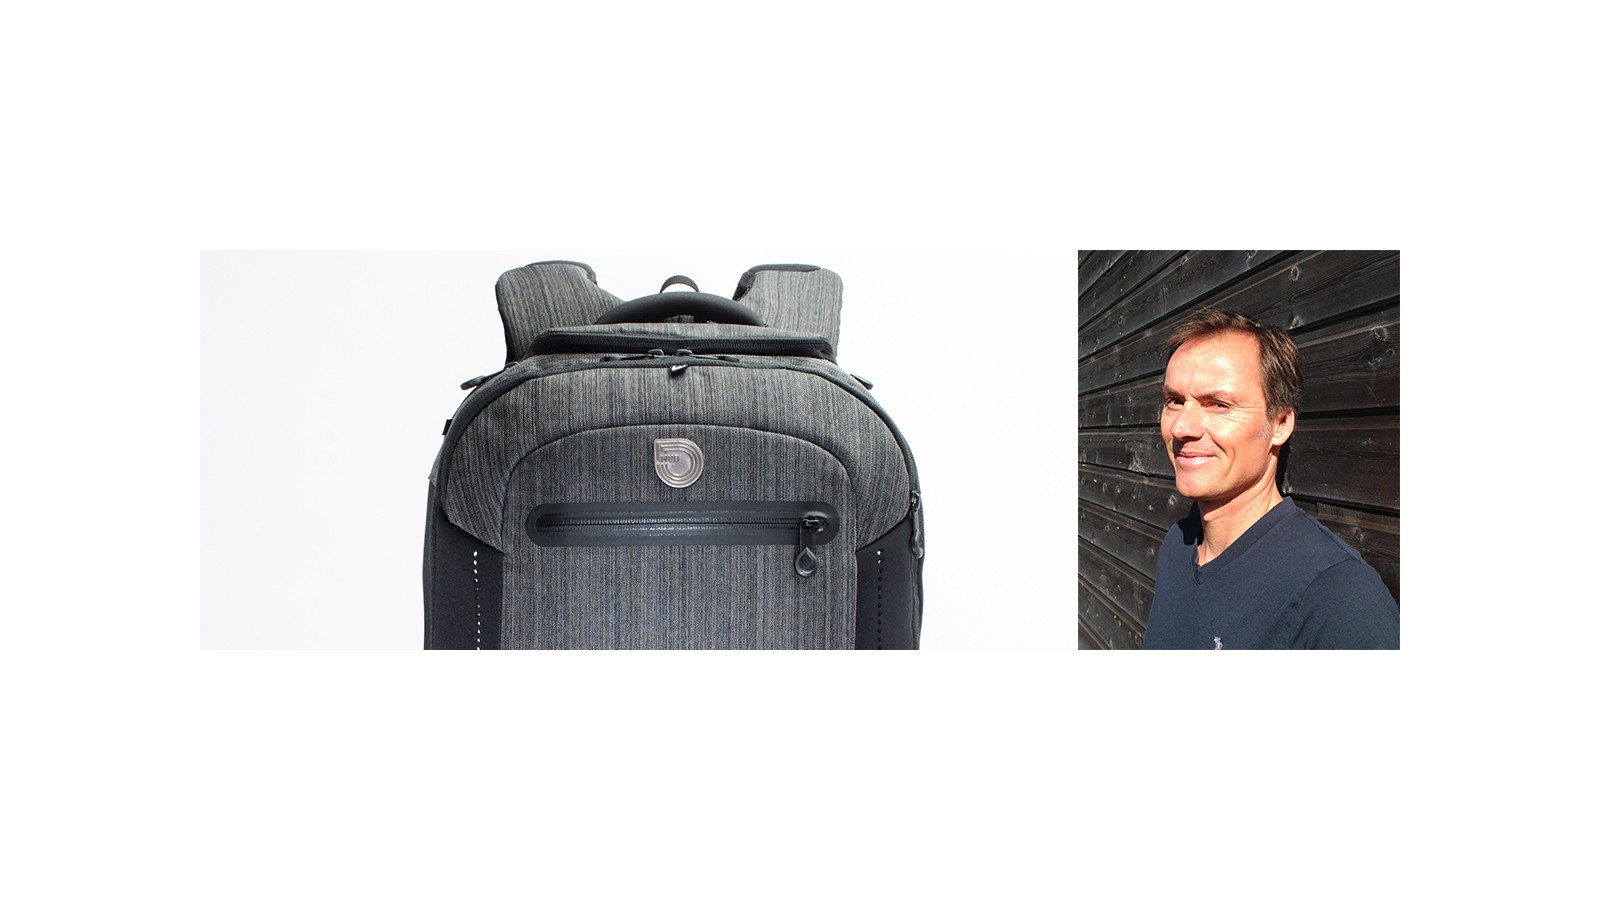 The Story of My Utility Bag: Meet Andy Gugenheimer